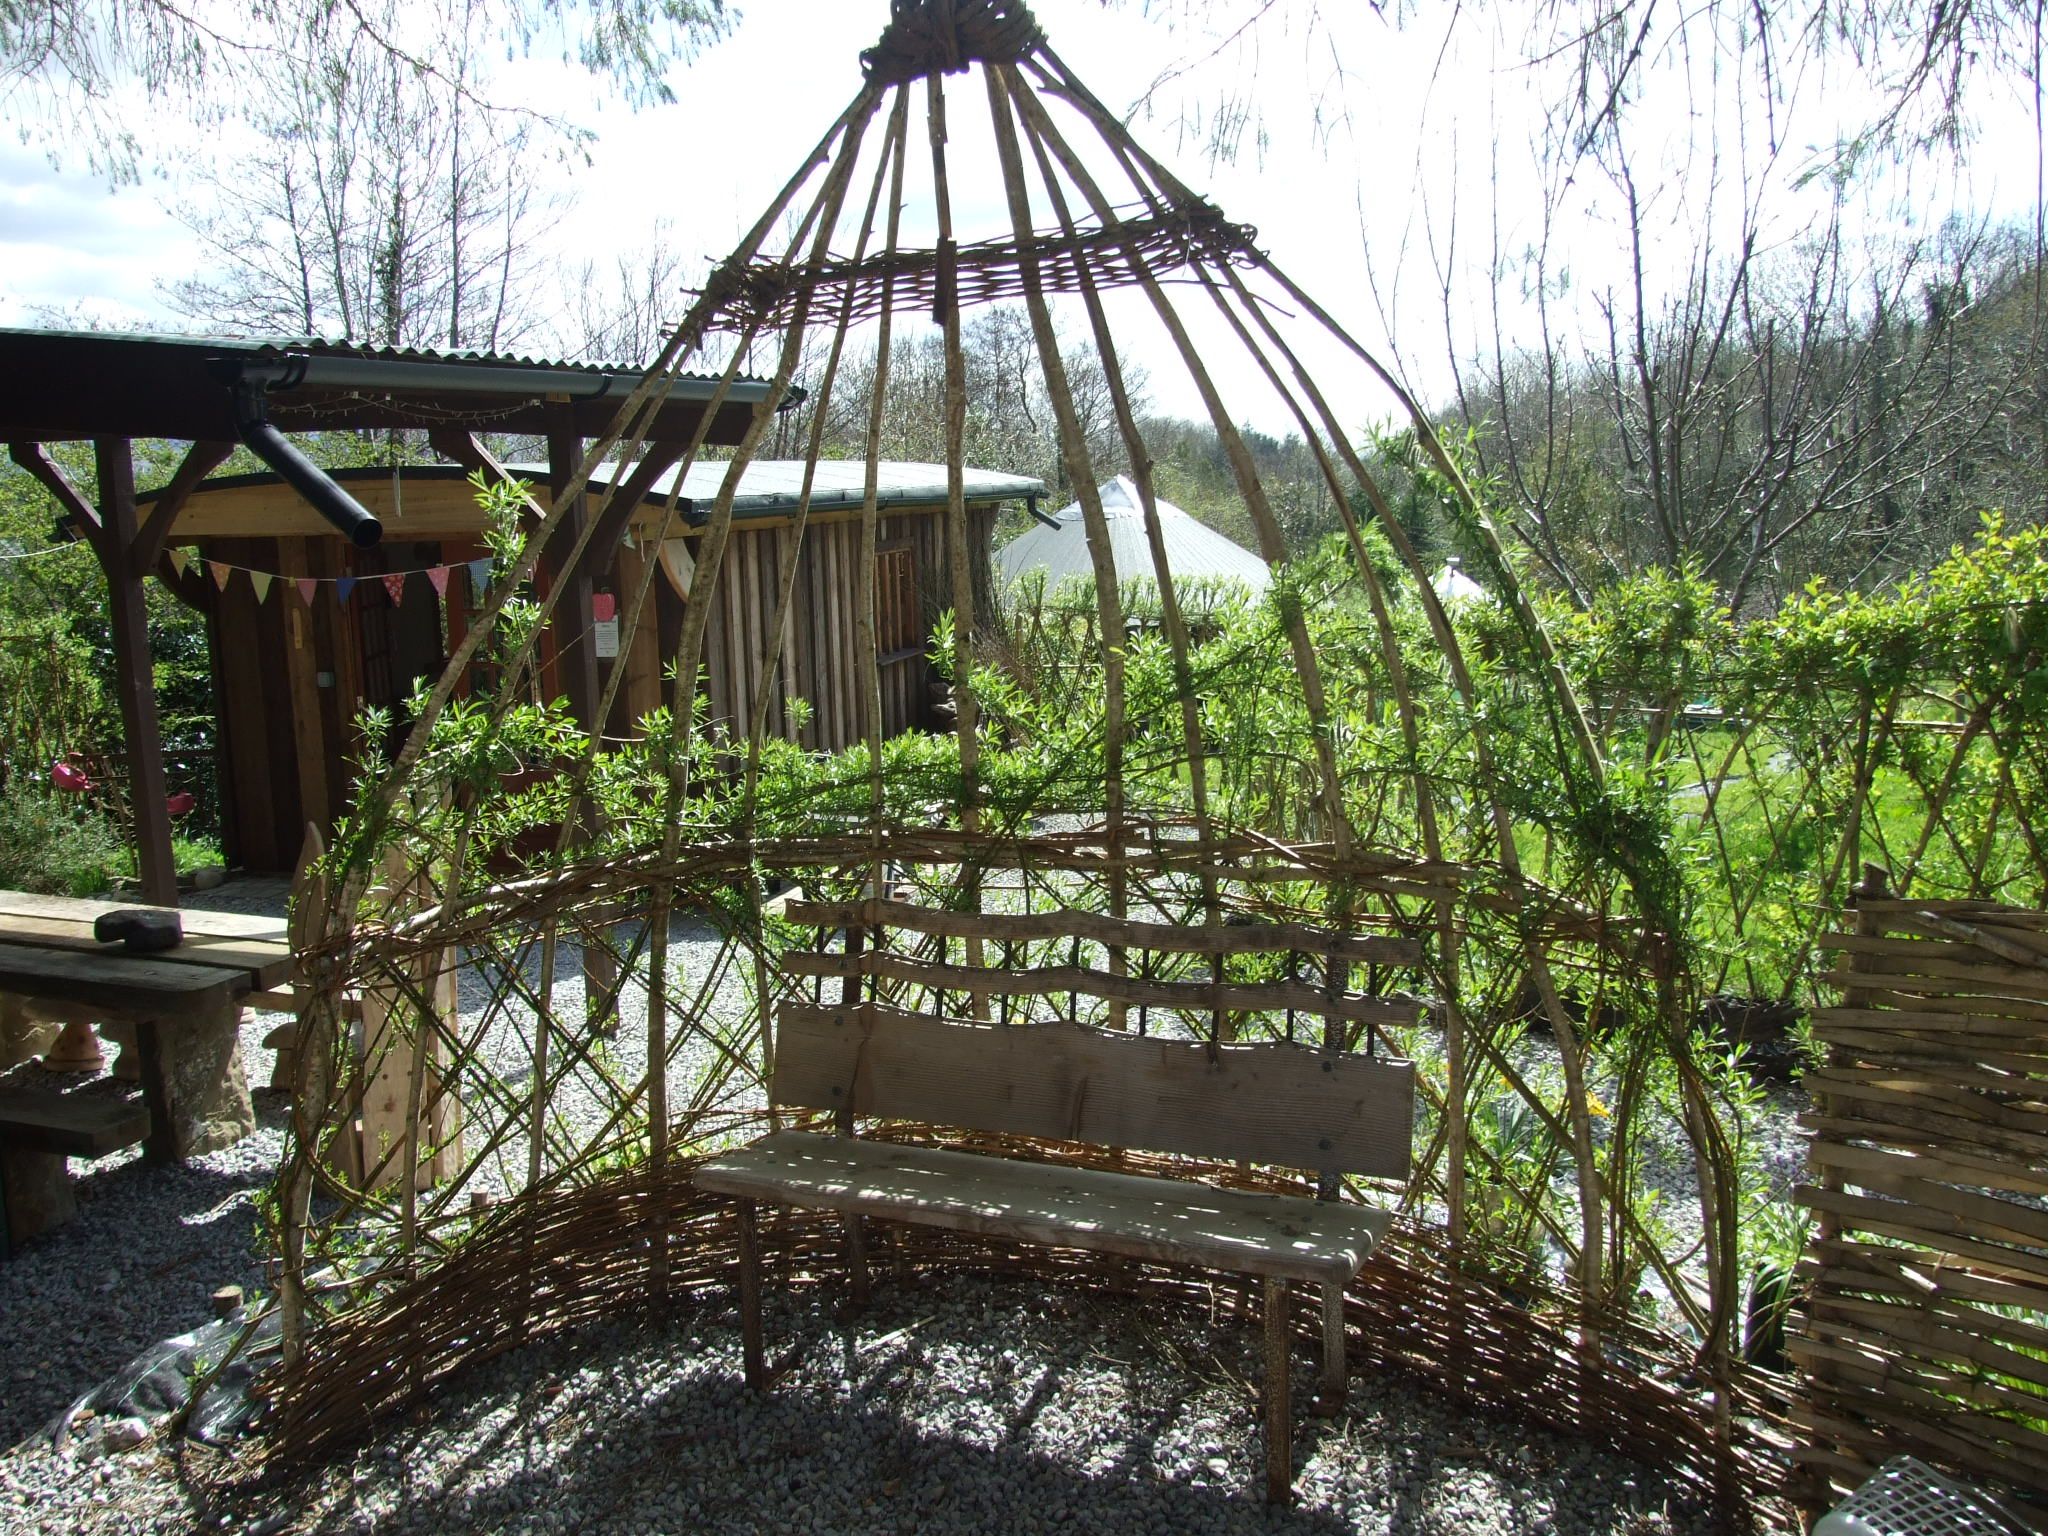 2015 Spring at Pink Apple Orchards Glampsite. Willow and Yurt surroundings (32)